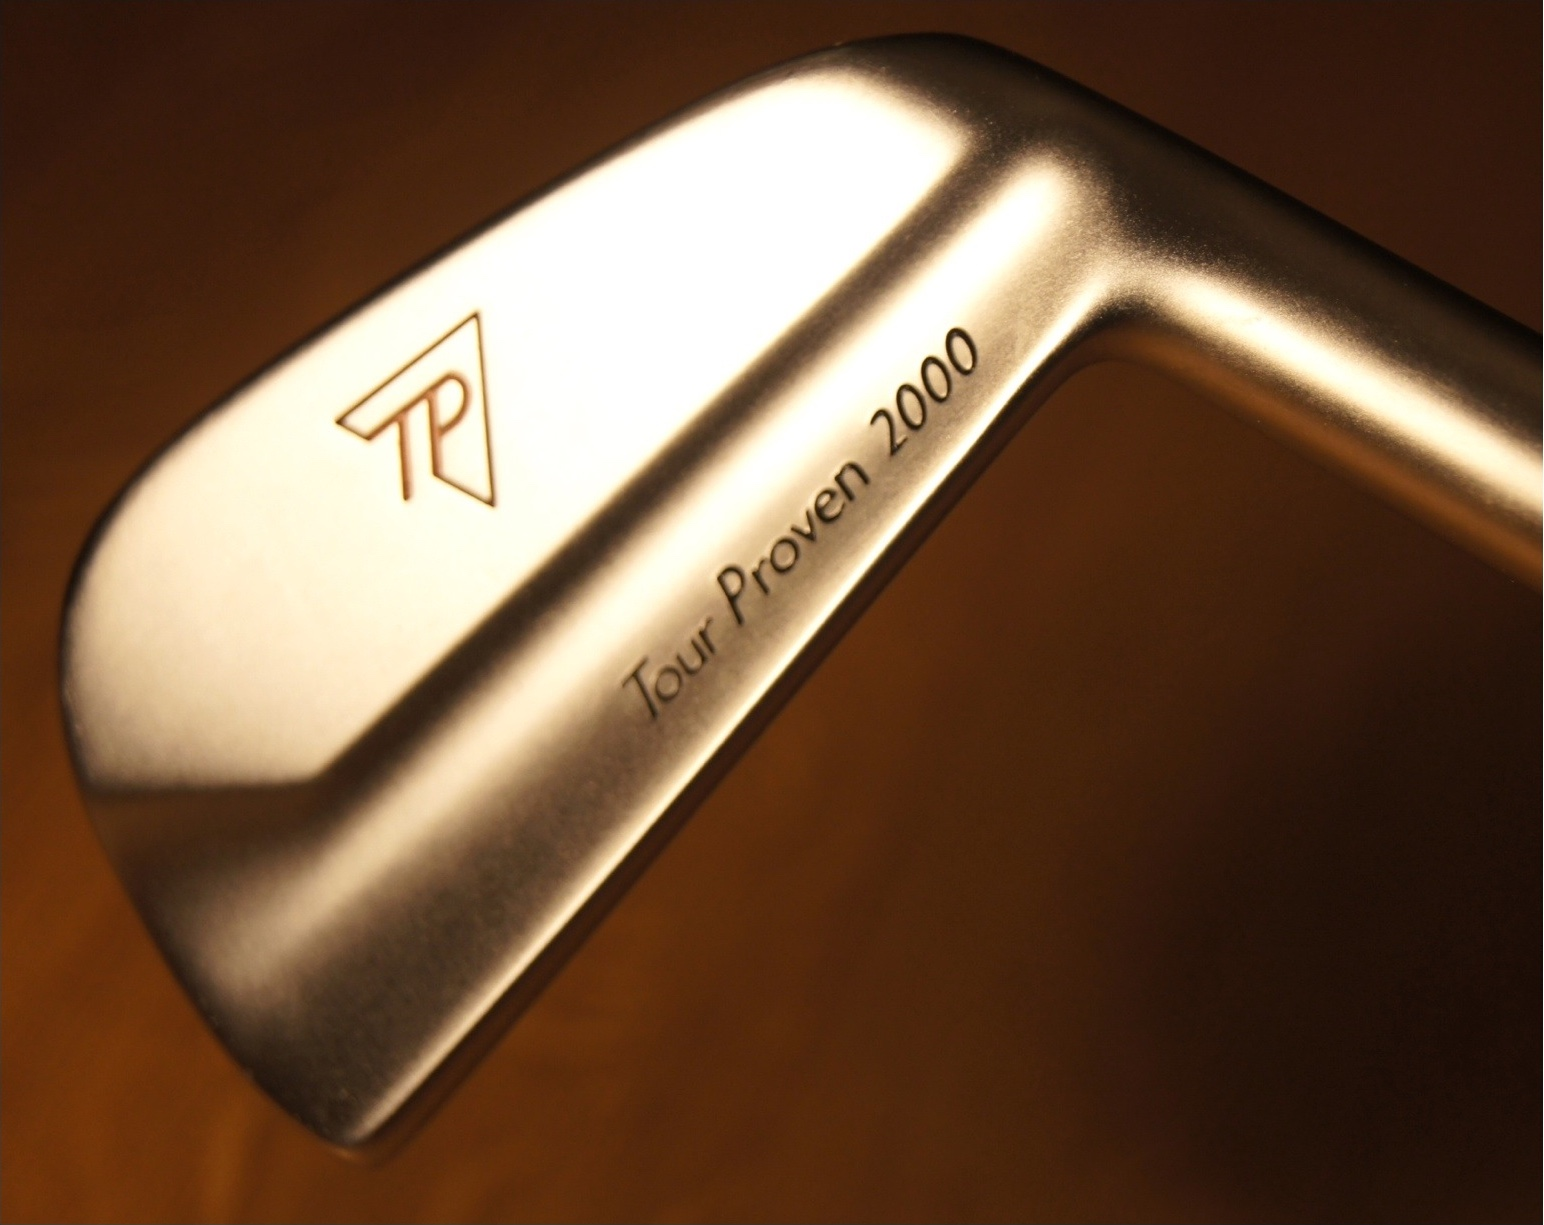 Mizuno TP-2000 Golf Club